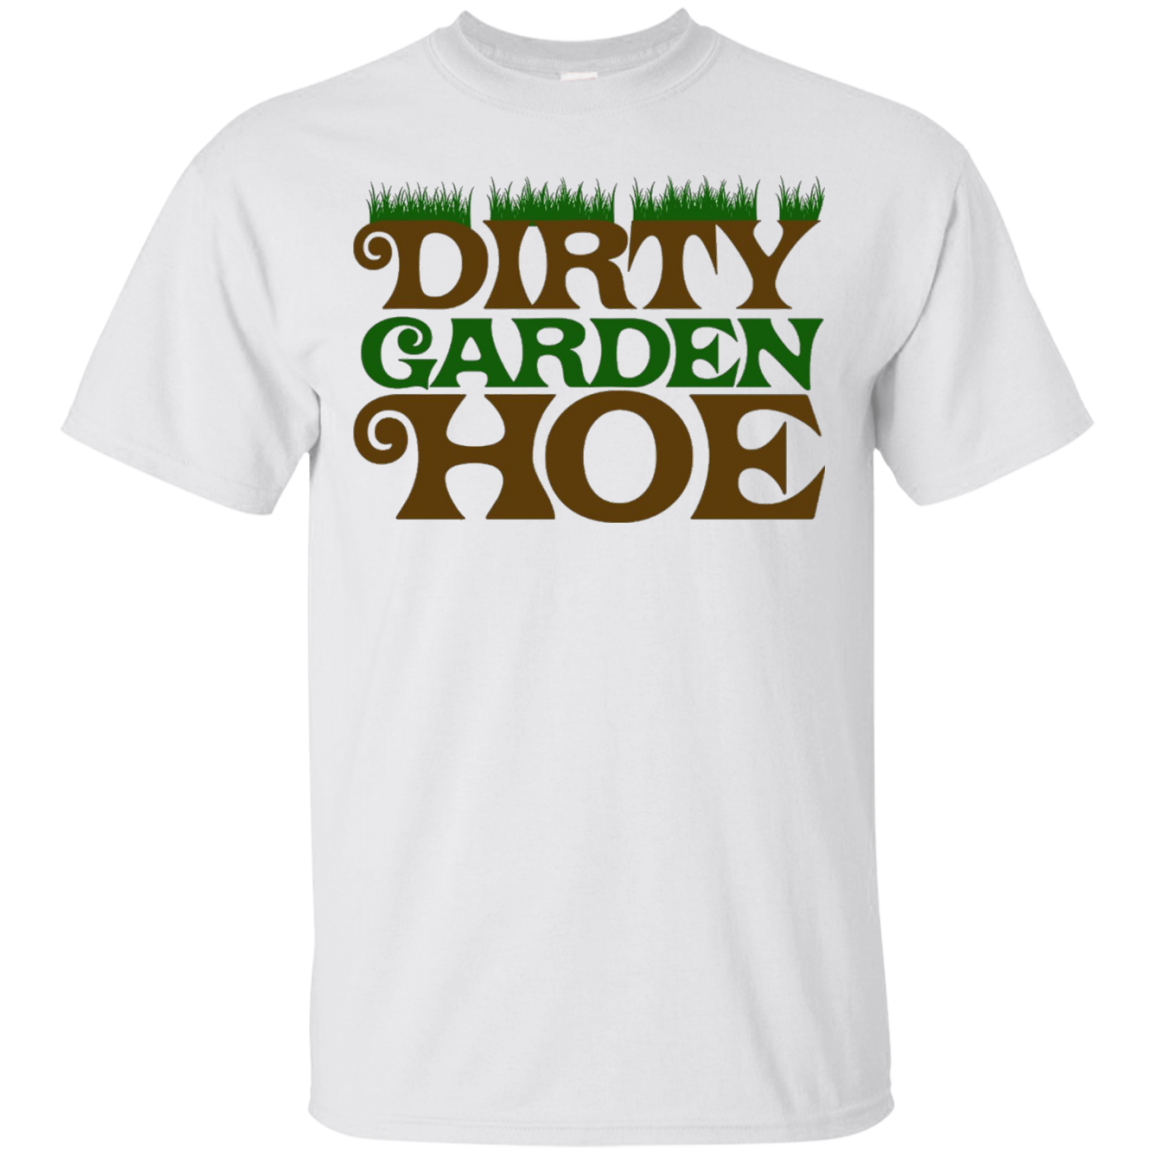 Dirty Garden Hoe Shirt Flowers & Greenhouse T-Shirt